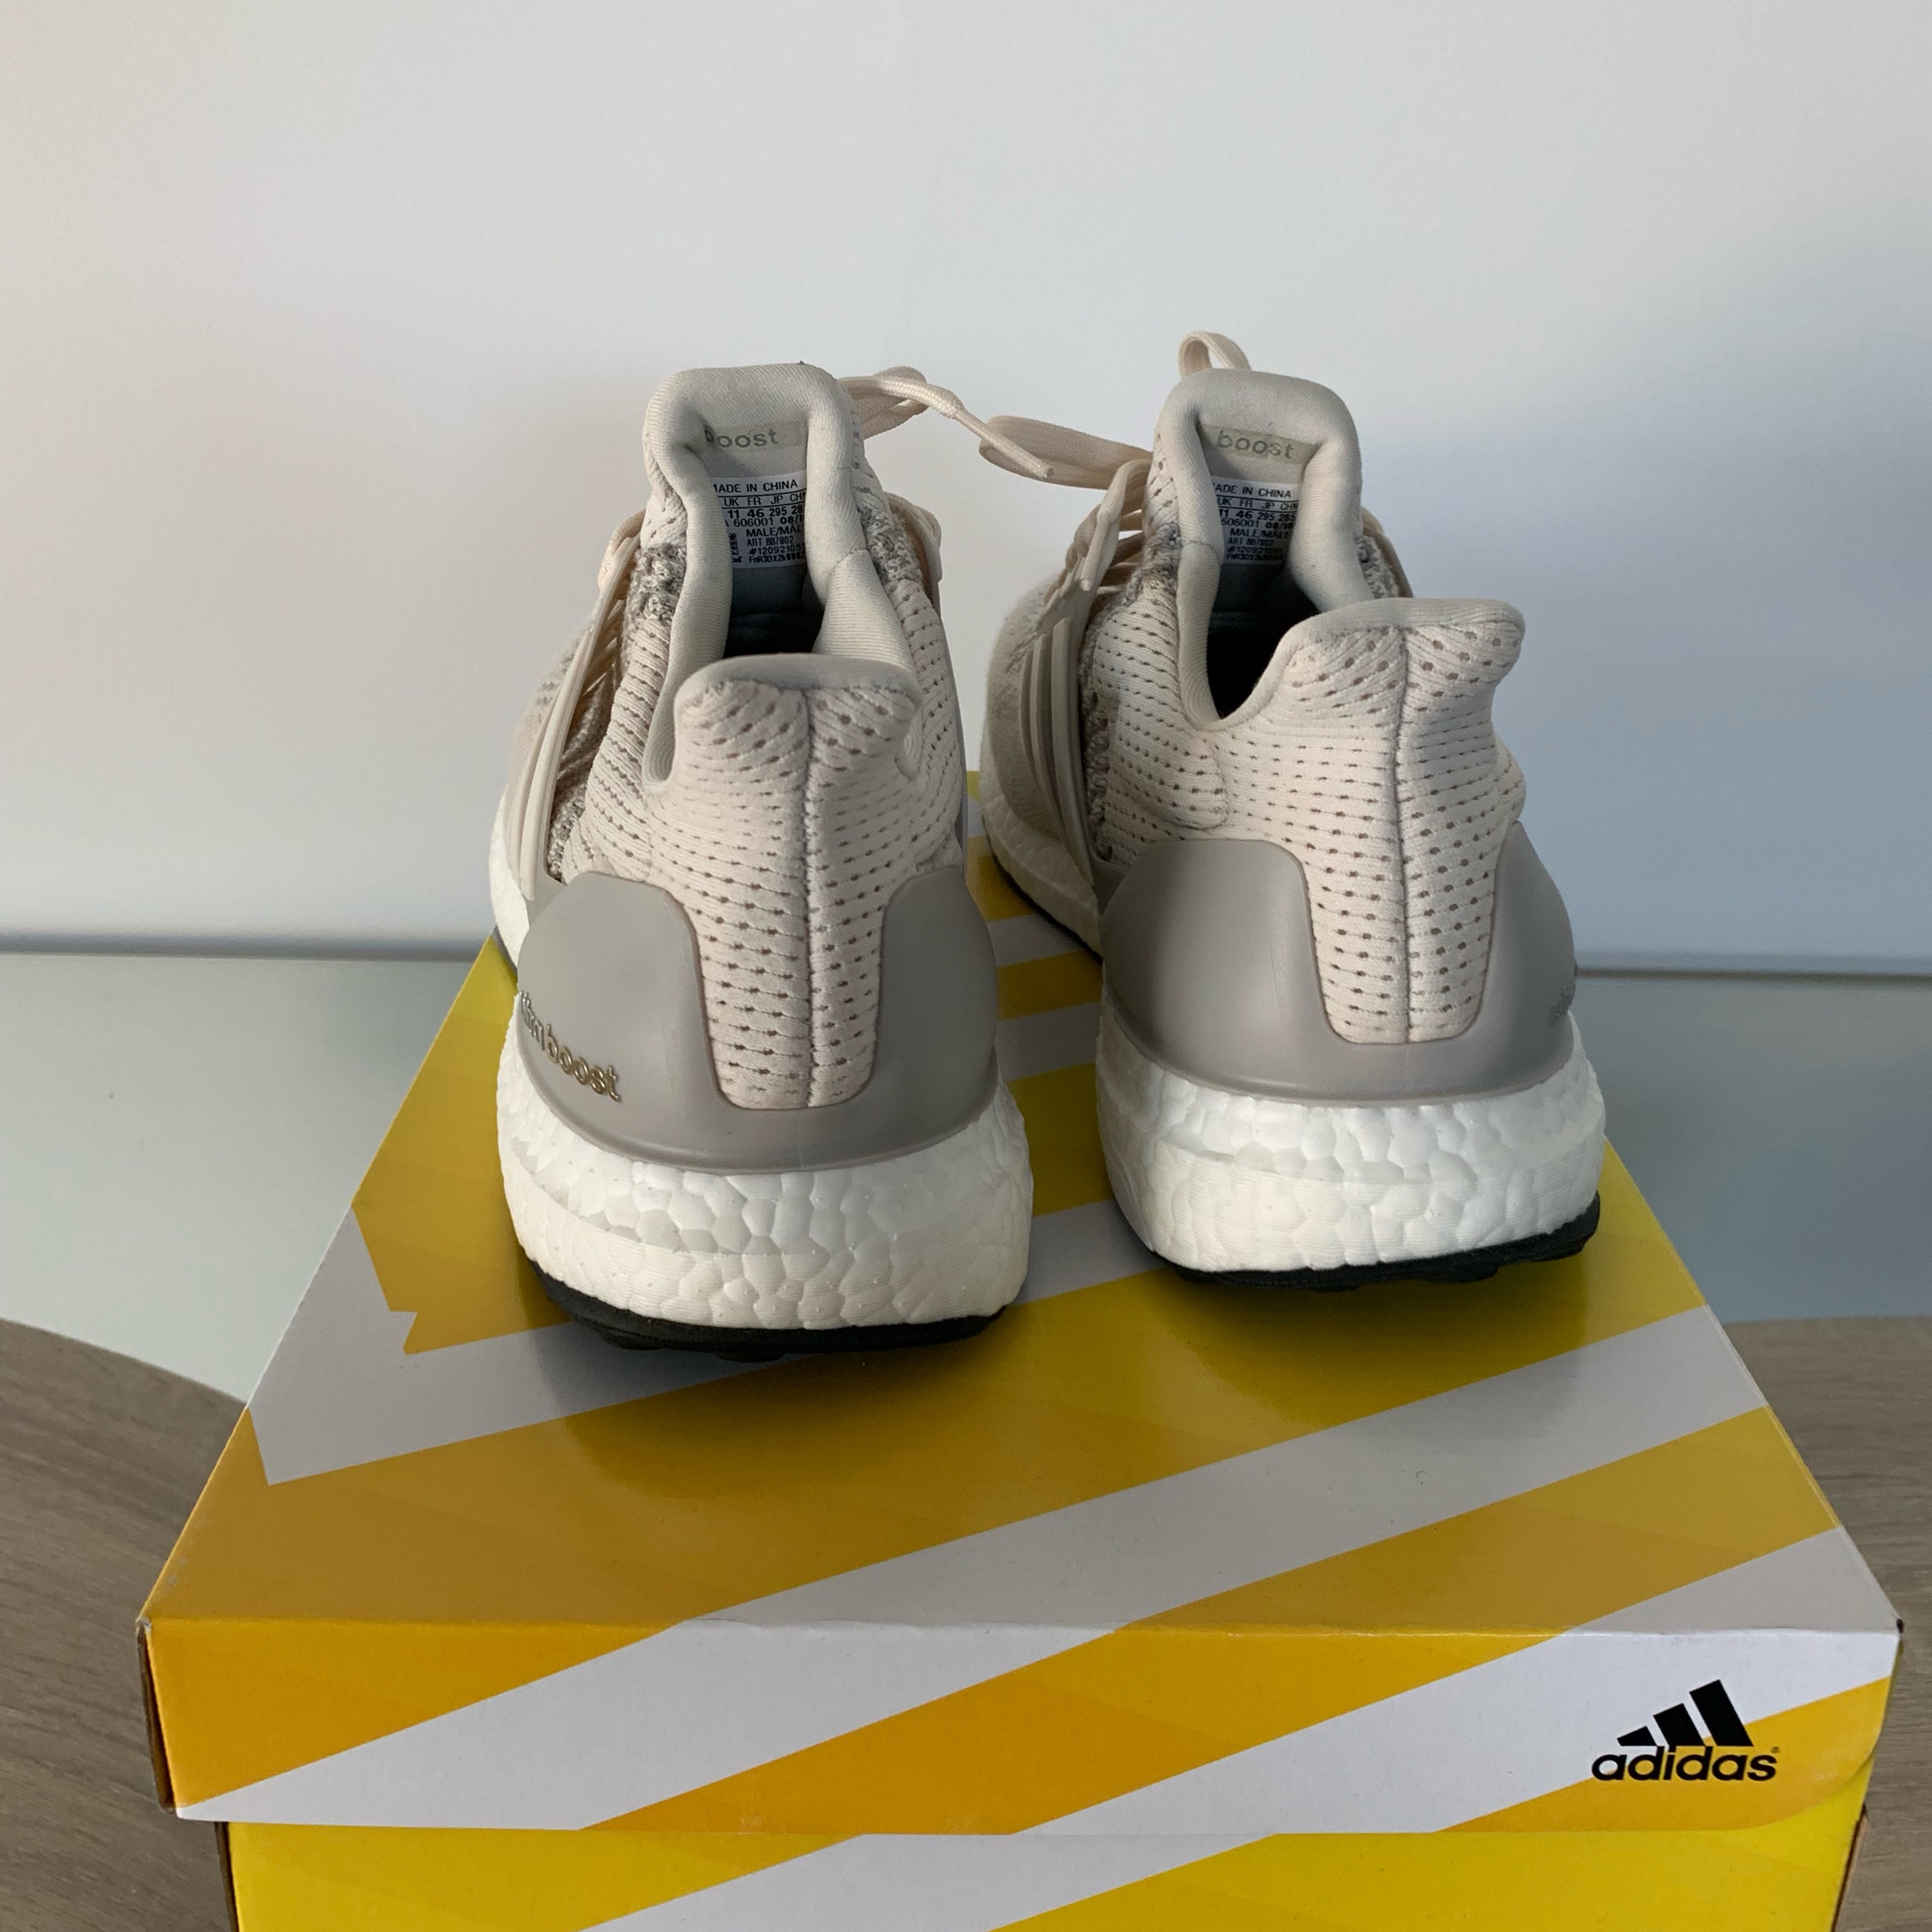 Adidas Ultraboost 1.0 Cream (Looking For Trades)